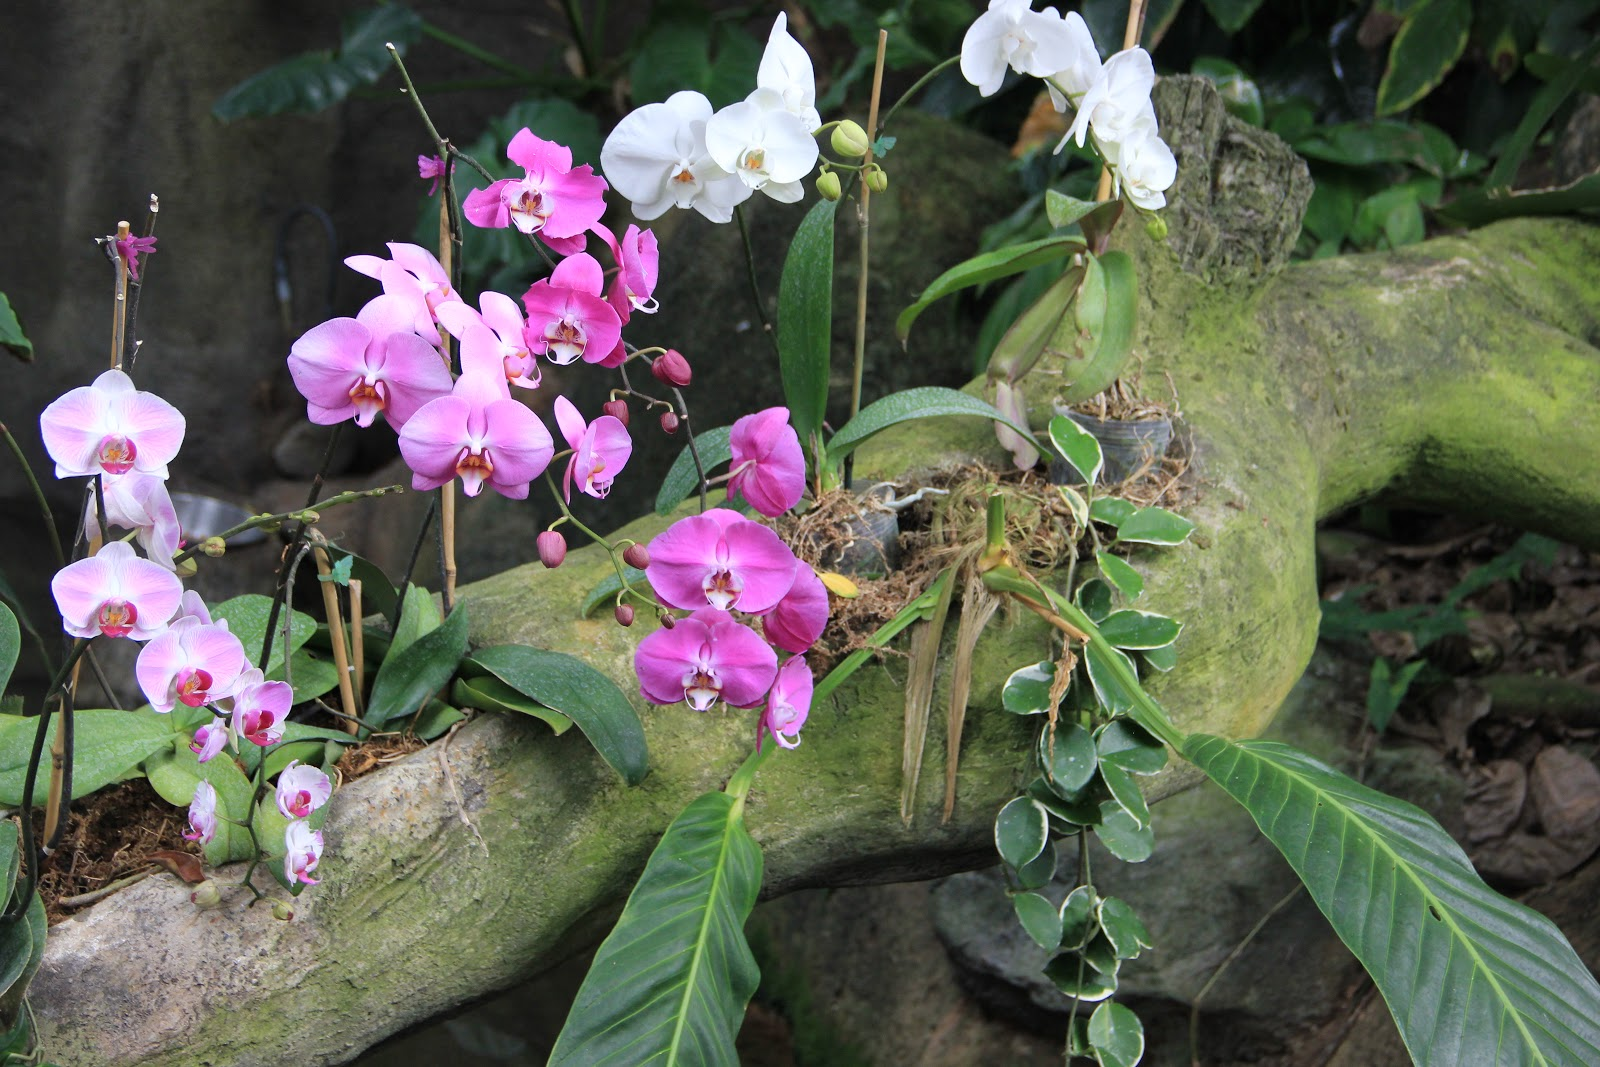 Terry Spear 39 S Blog Orchids Of The Rainforest March 13